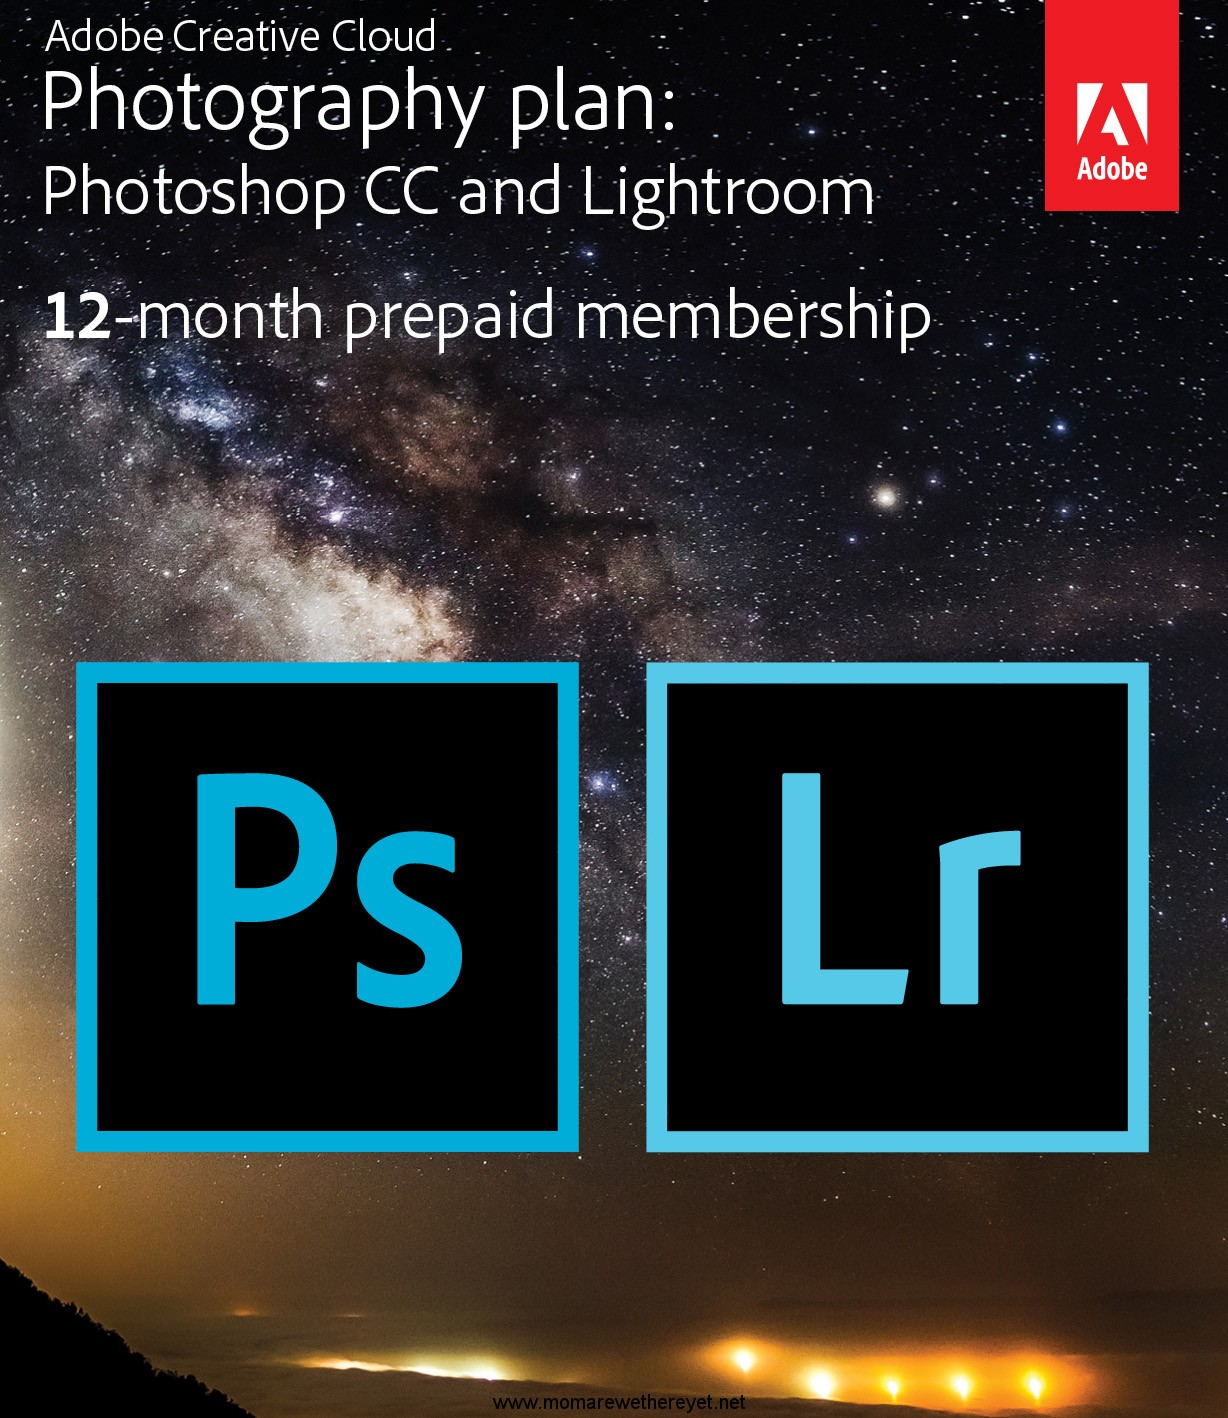 What IS Your Best Photoshop Plan?